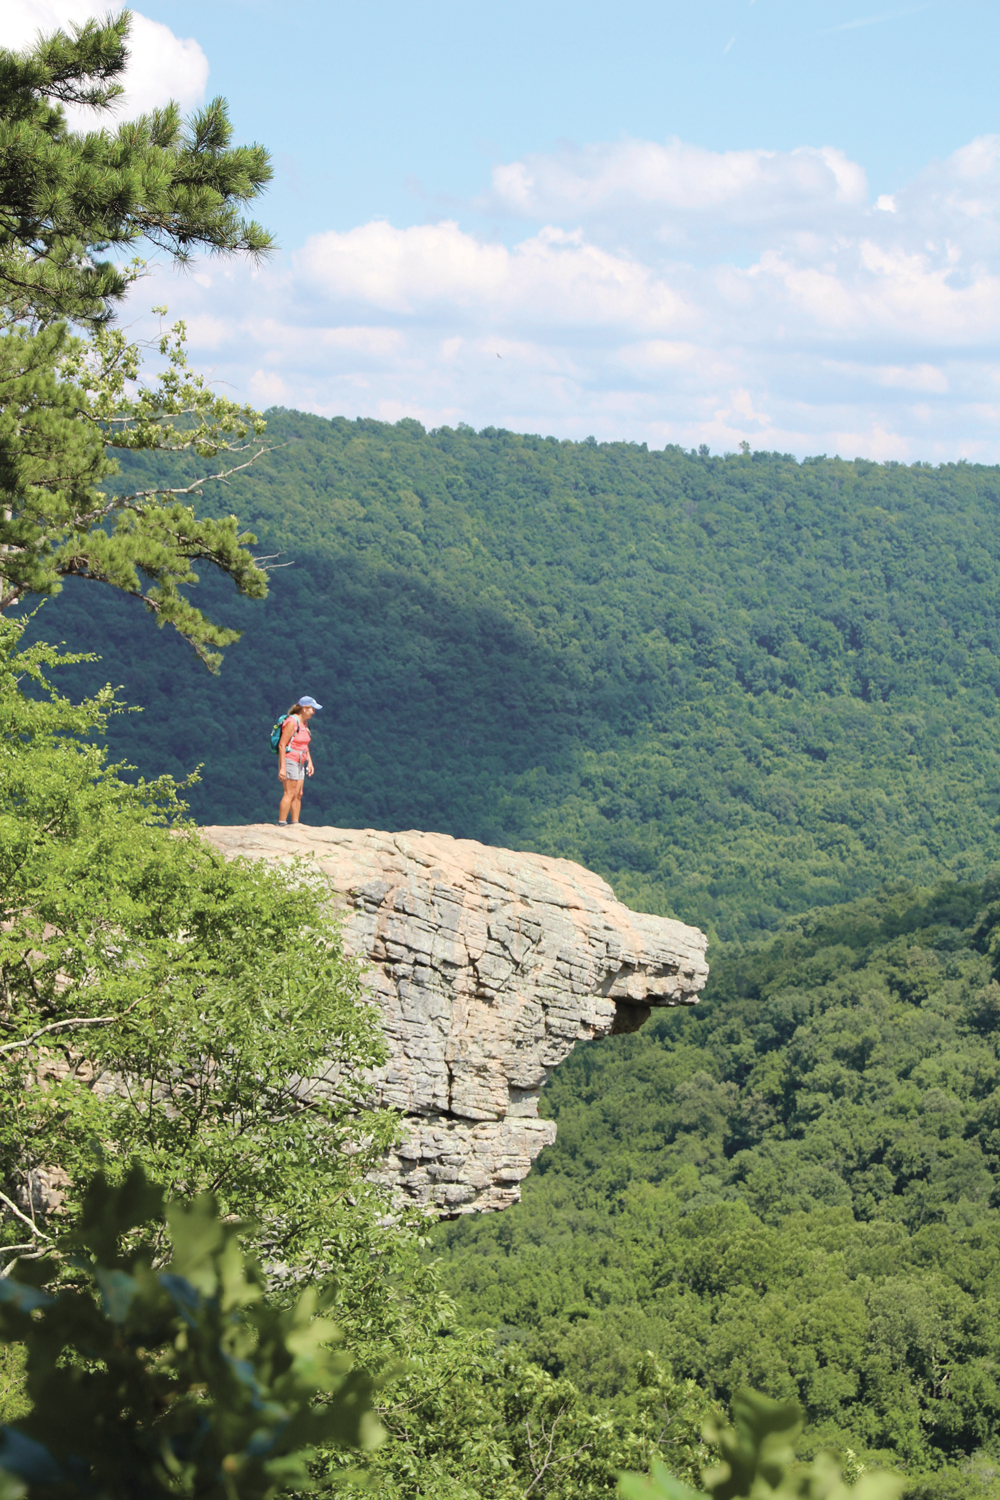 Hawksbill Crag is one of the most photographed spots in Arkansas. Here, Stacy Price peeks over the edge after hiking in from the Cave Mountain Road trailhead near Boxley.